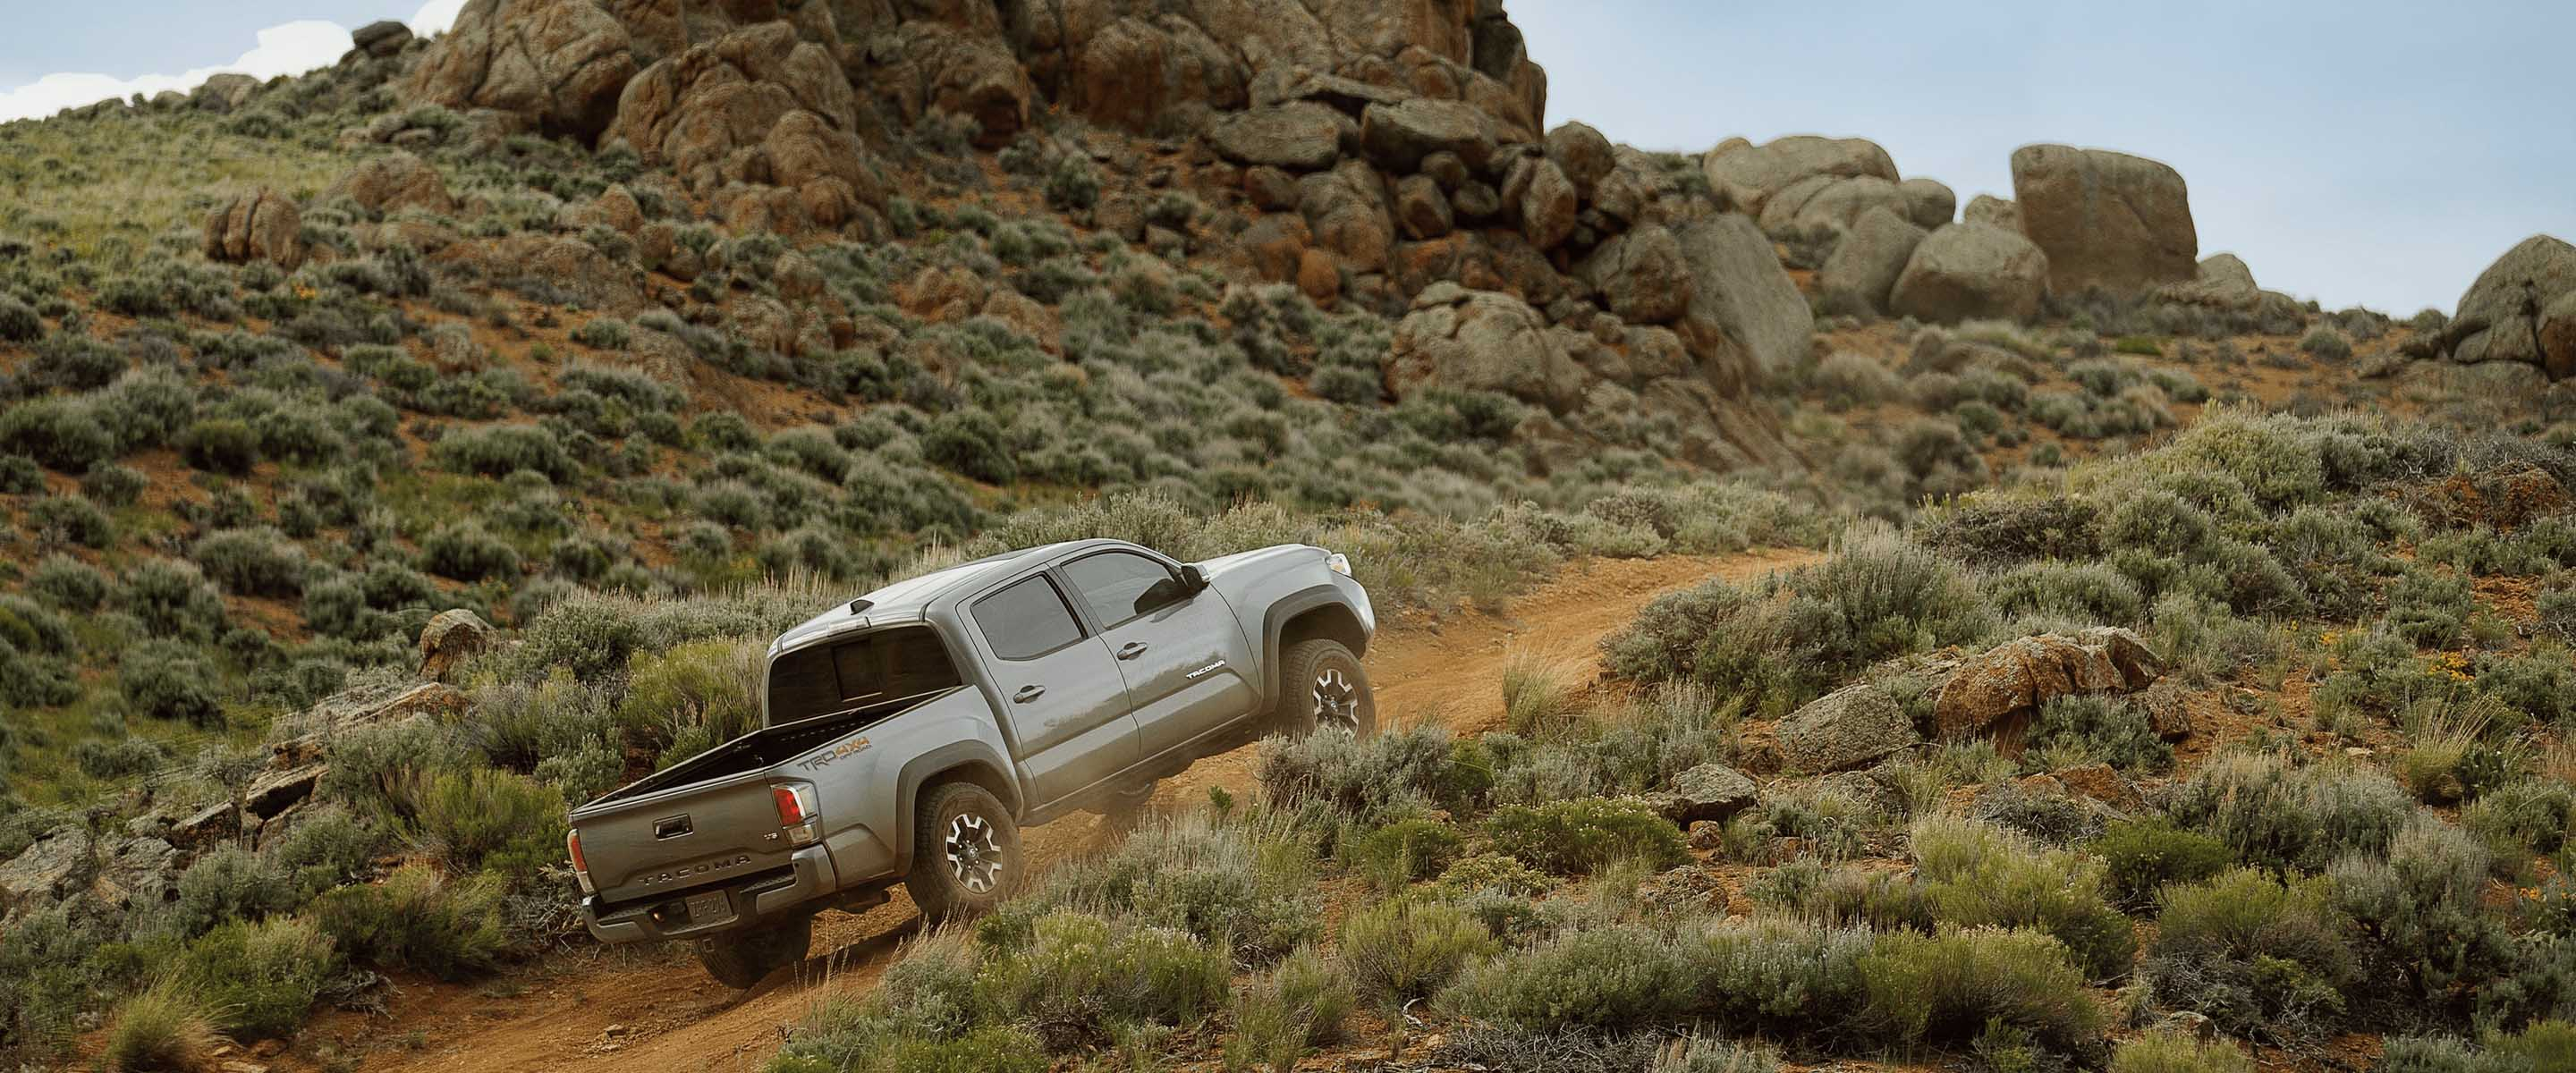 Discover The New 2020 Toyota Tacoma In The Dalles, Oregon